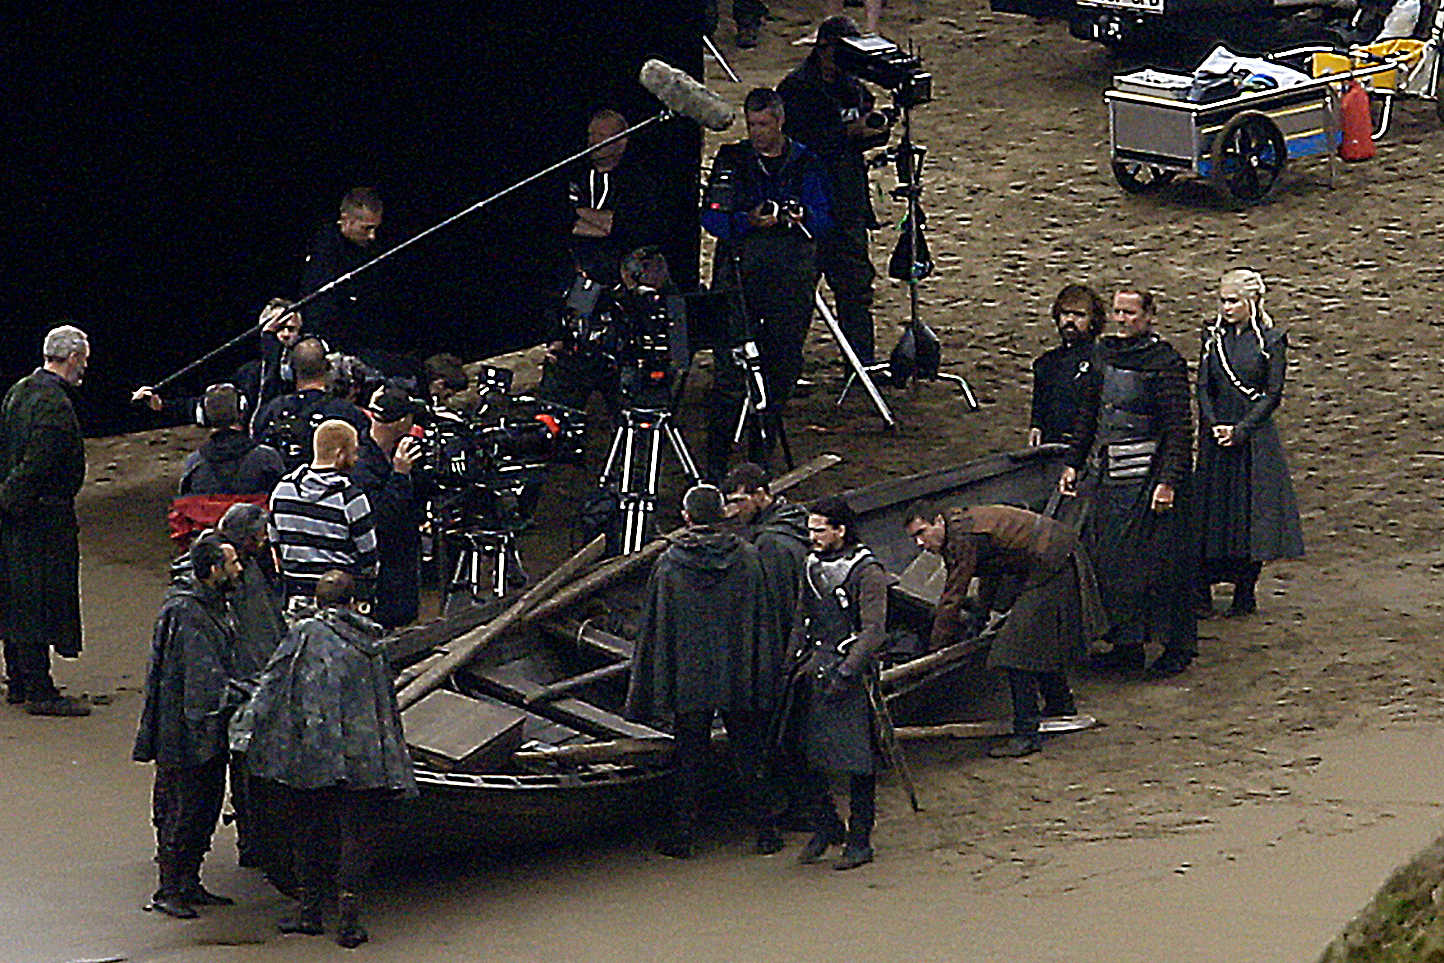 Kit Harington (Jon Snow), Emilia Clarke (Daenerys Targaryen), Peter Dinklage (Tyrion Lannister) and Iain Glen (Ser Jorah) are seen on the set of Game of Thrones which is currently filming for its seventh series in Northern Spain